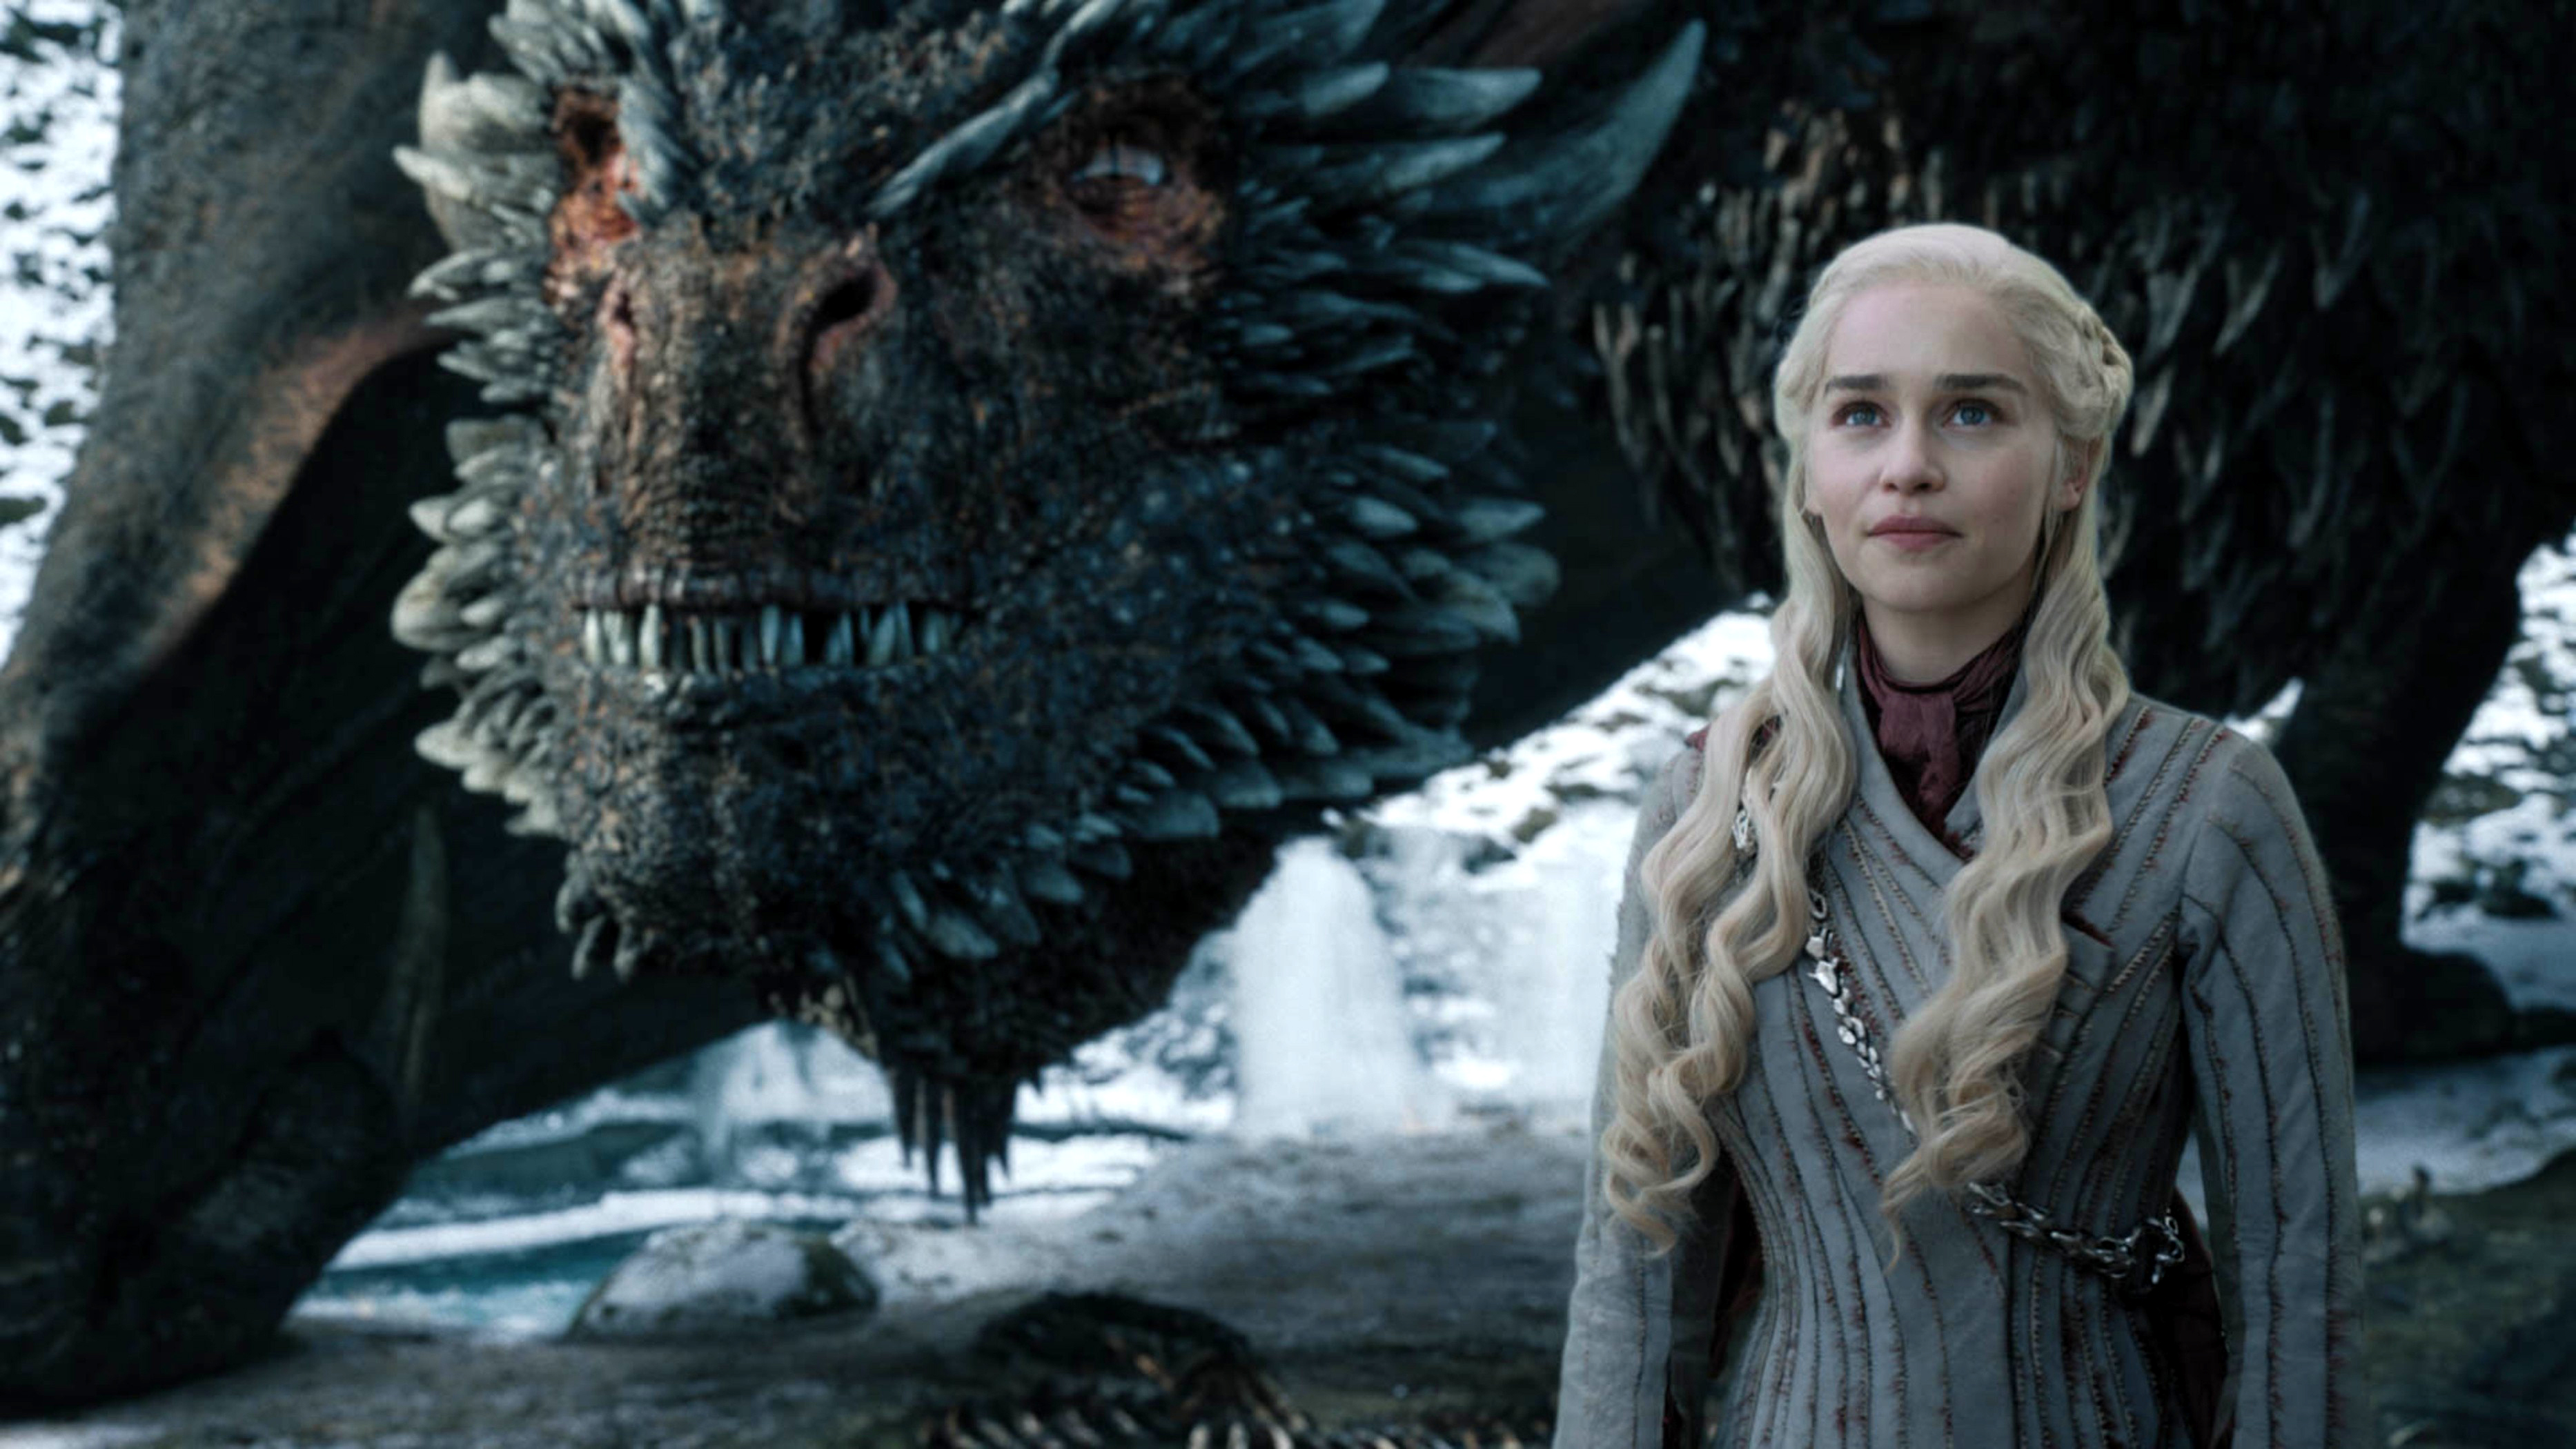 8x04 - The Last of the Starks - Daenerys and Drogon